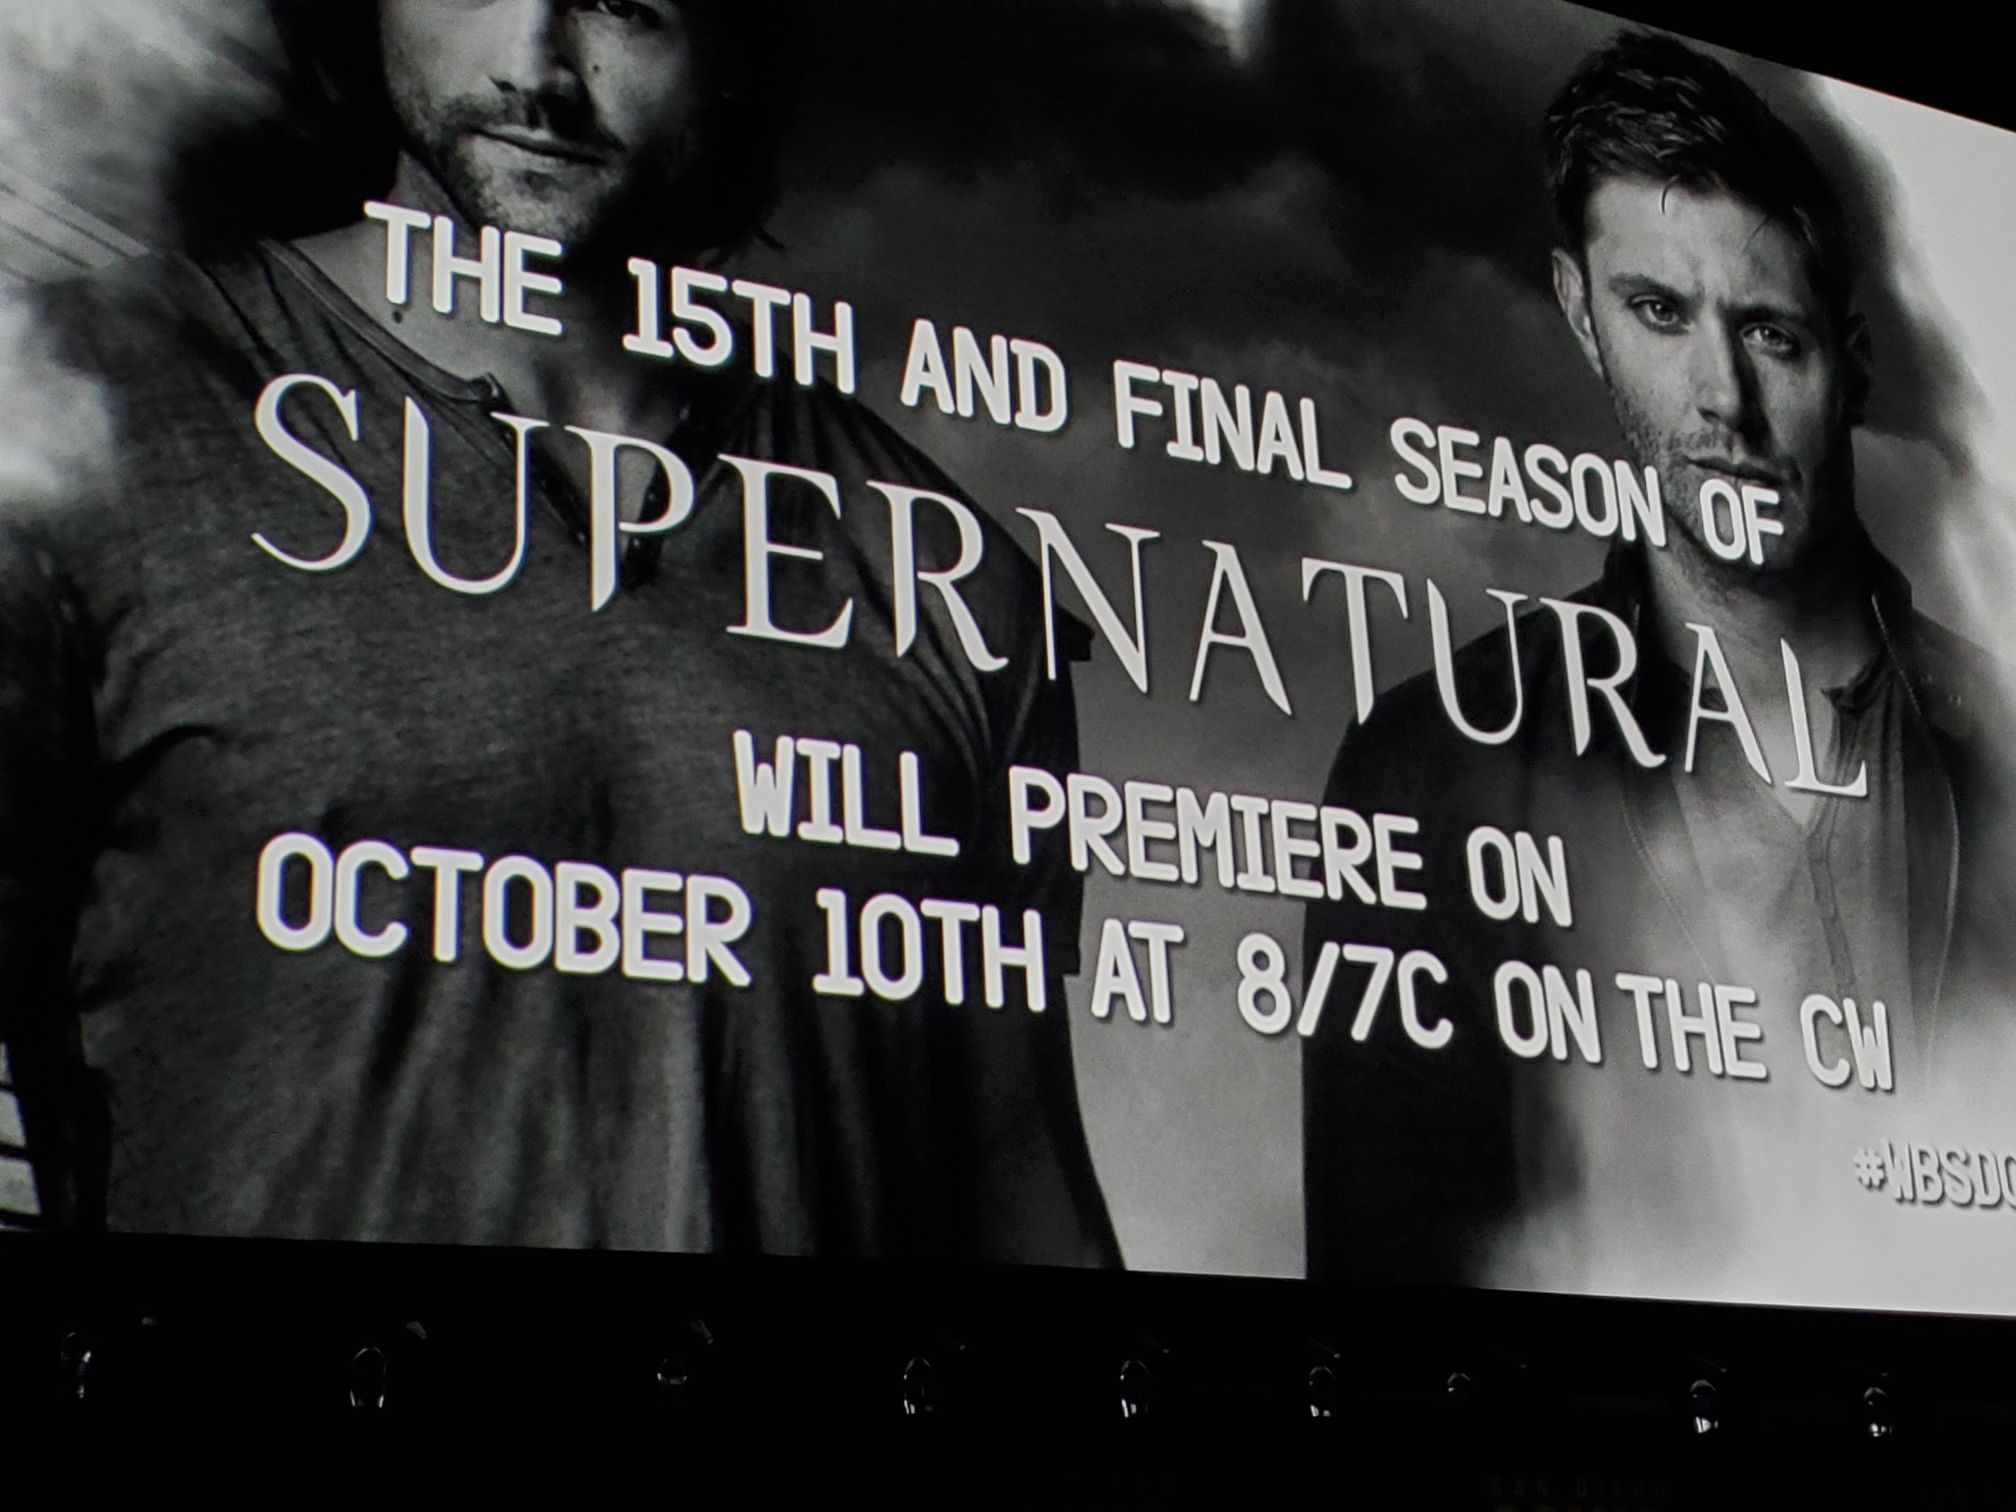 Supernatural 15 final season posting at Comic Con 2019